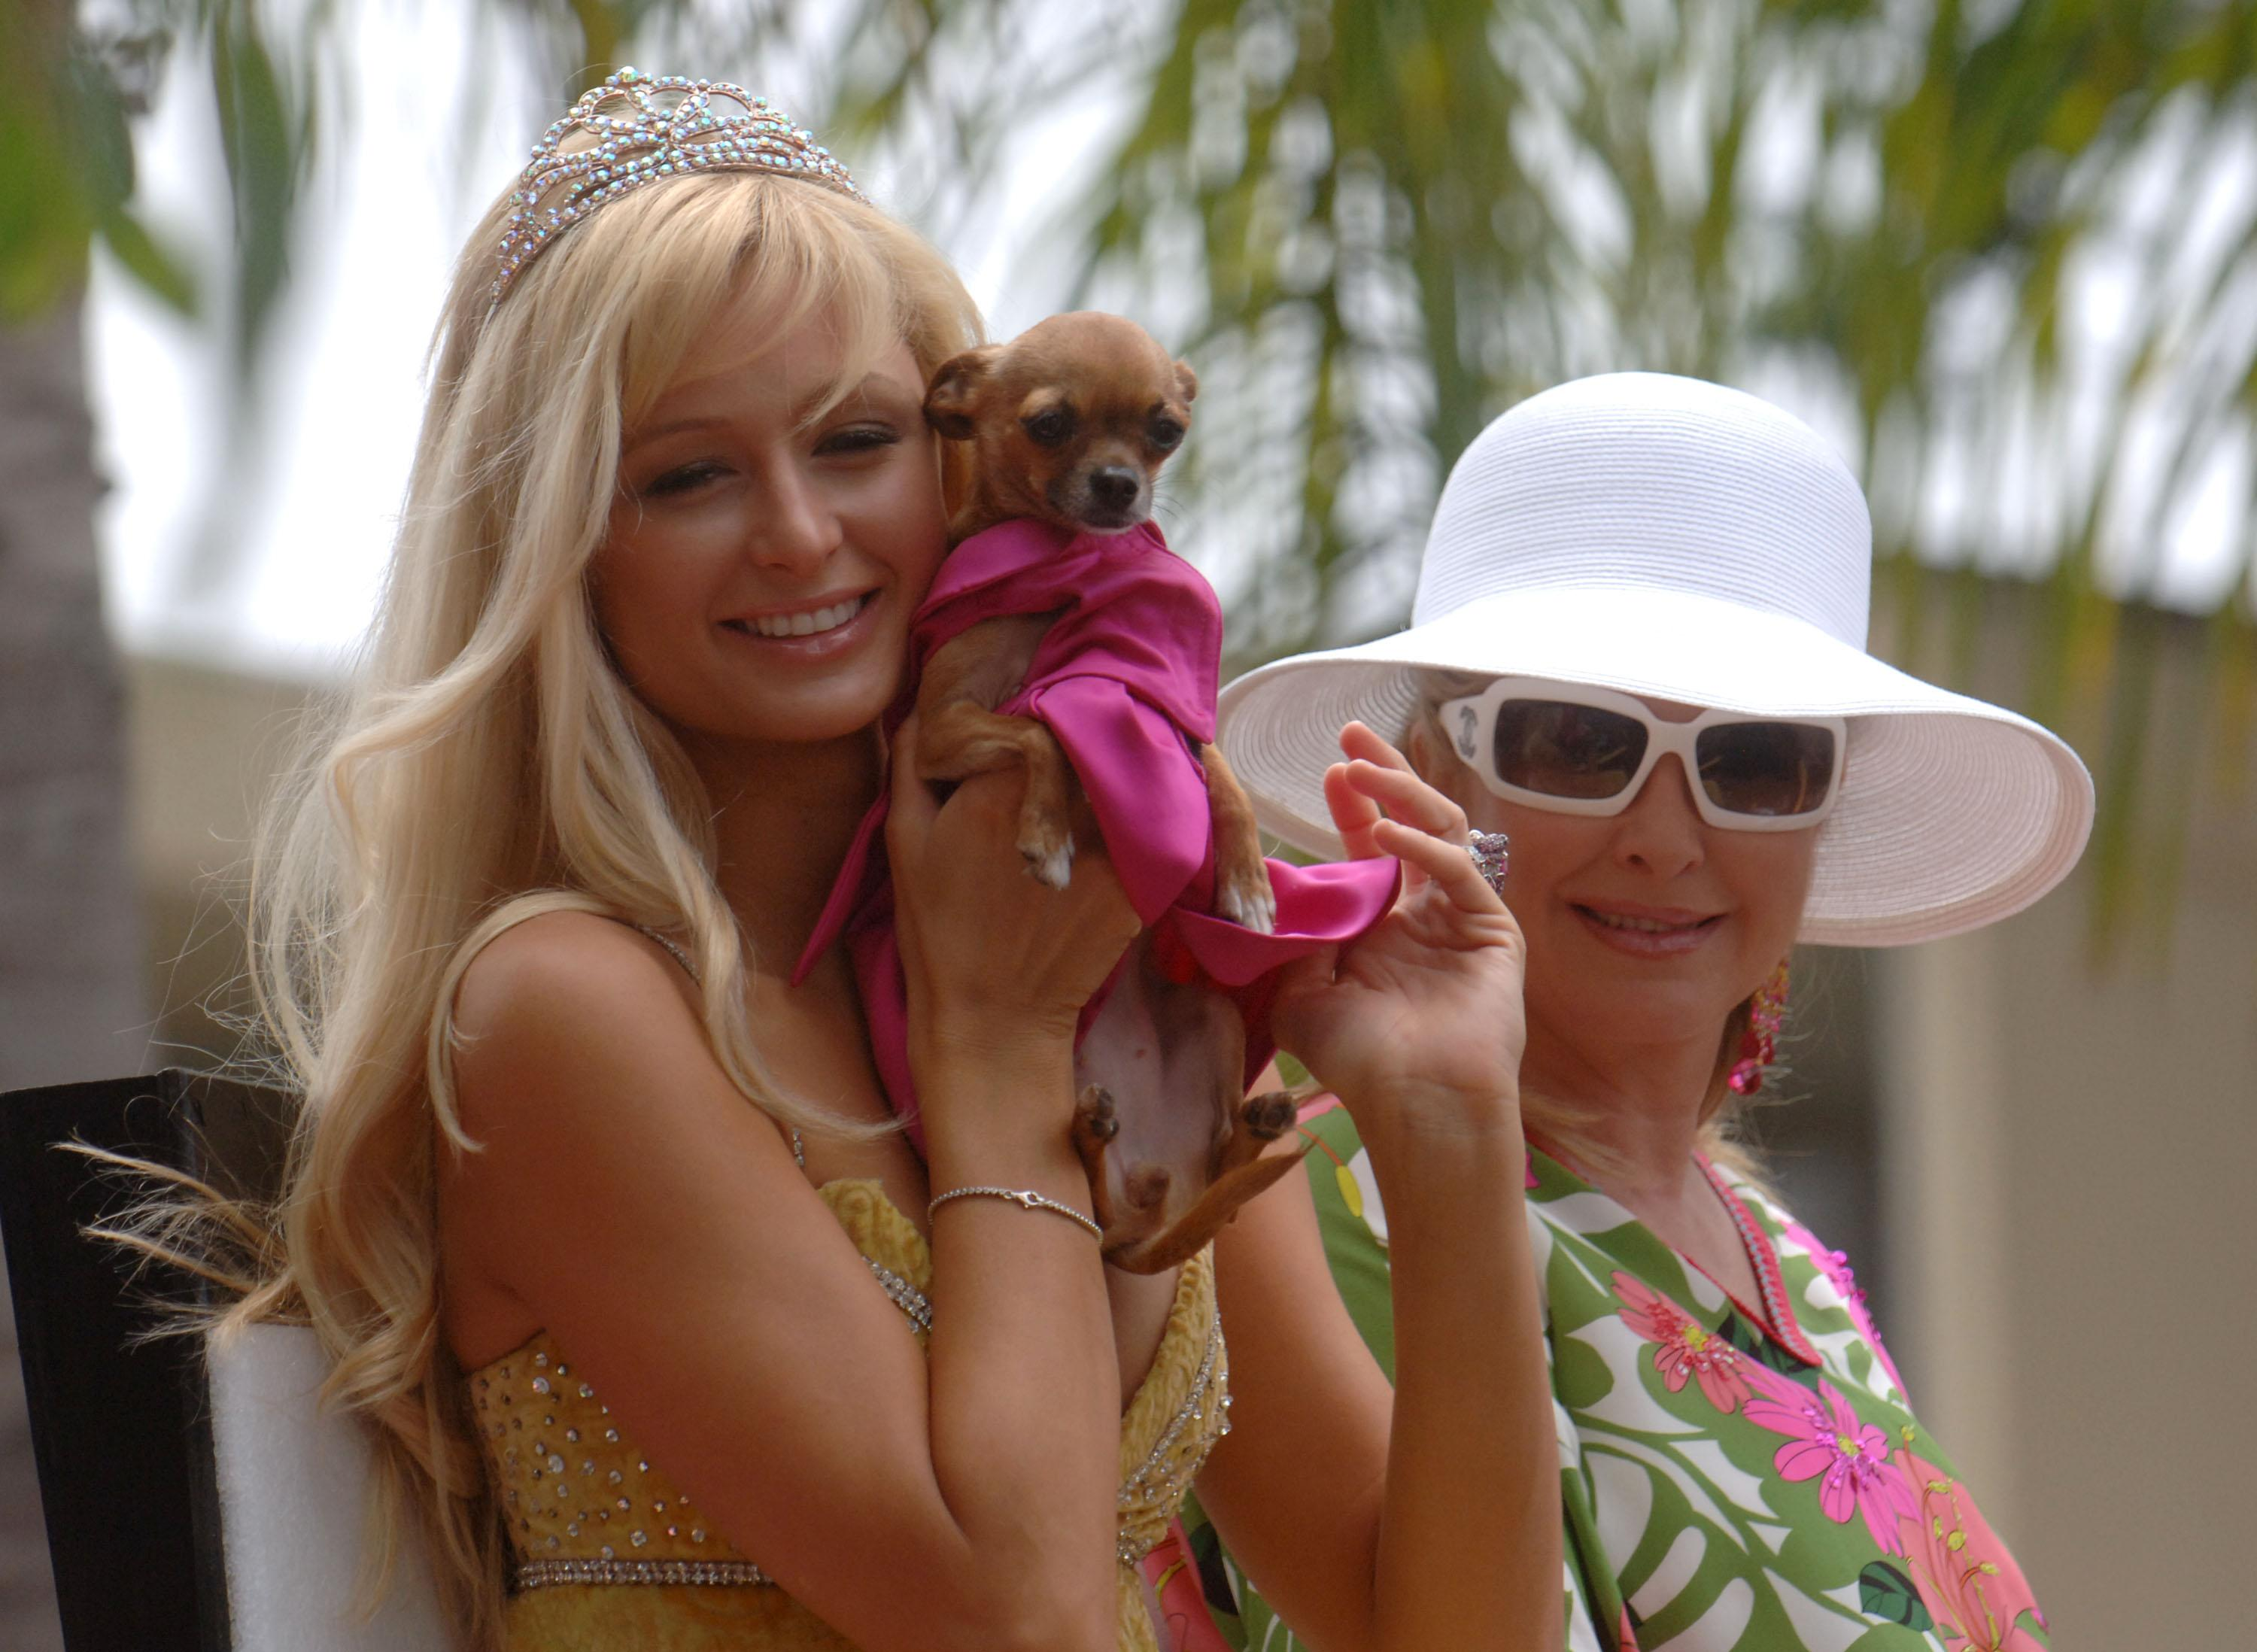 paris-hilton-dog-mansion-1531773911923-1531773914585.jpg